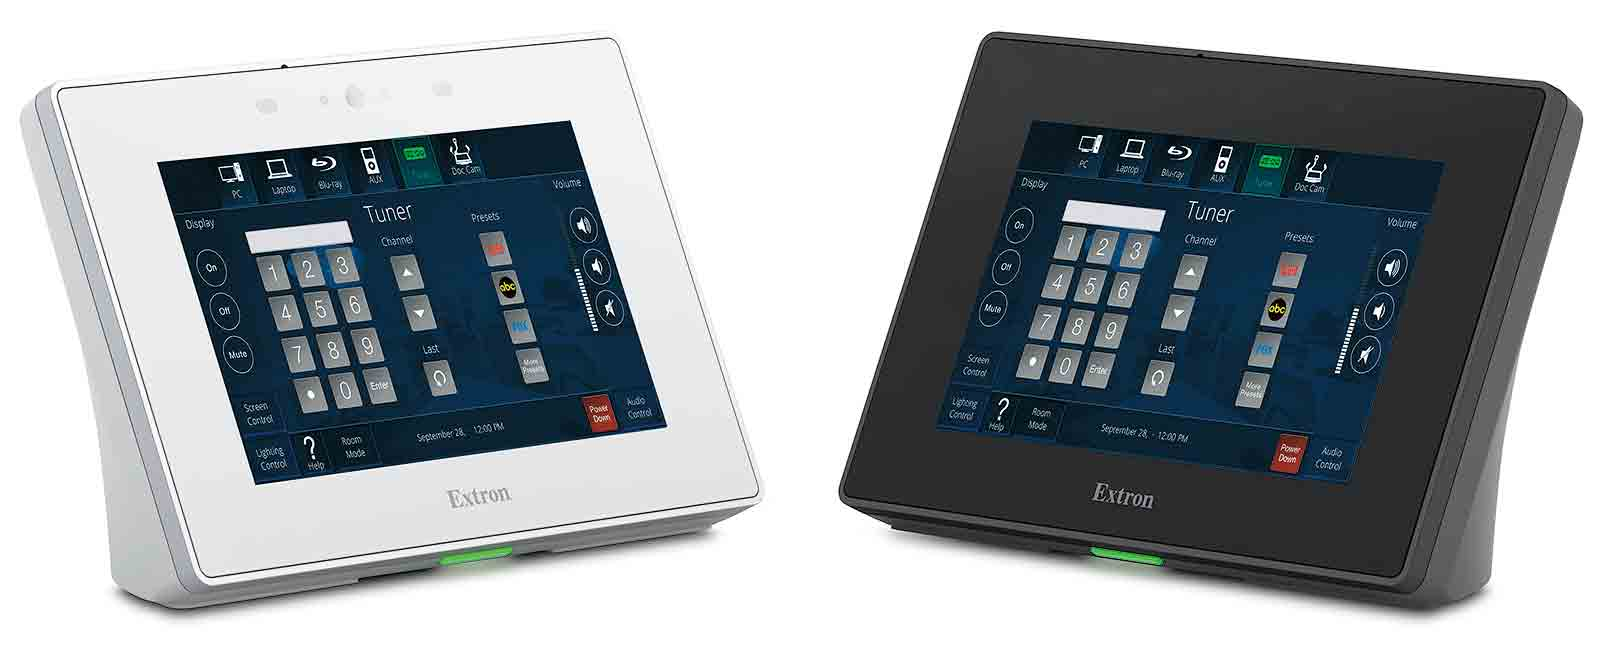 Extron TouchLink TLP Pro 320 Touchpanel Windows Vista 64-BIT